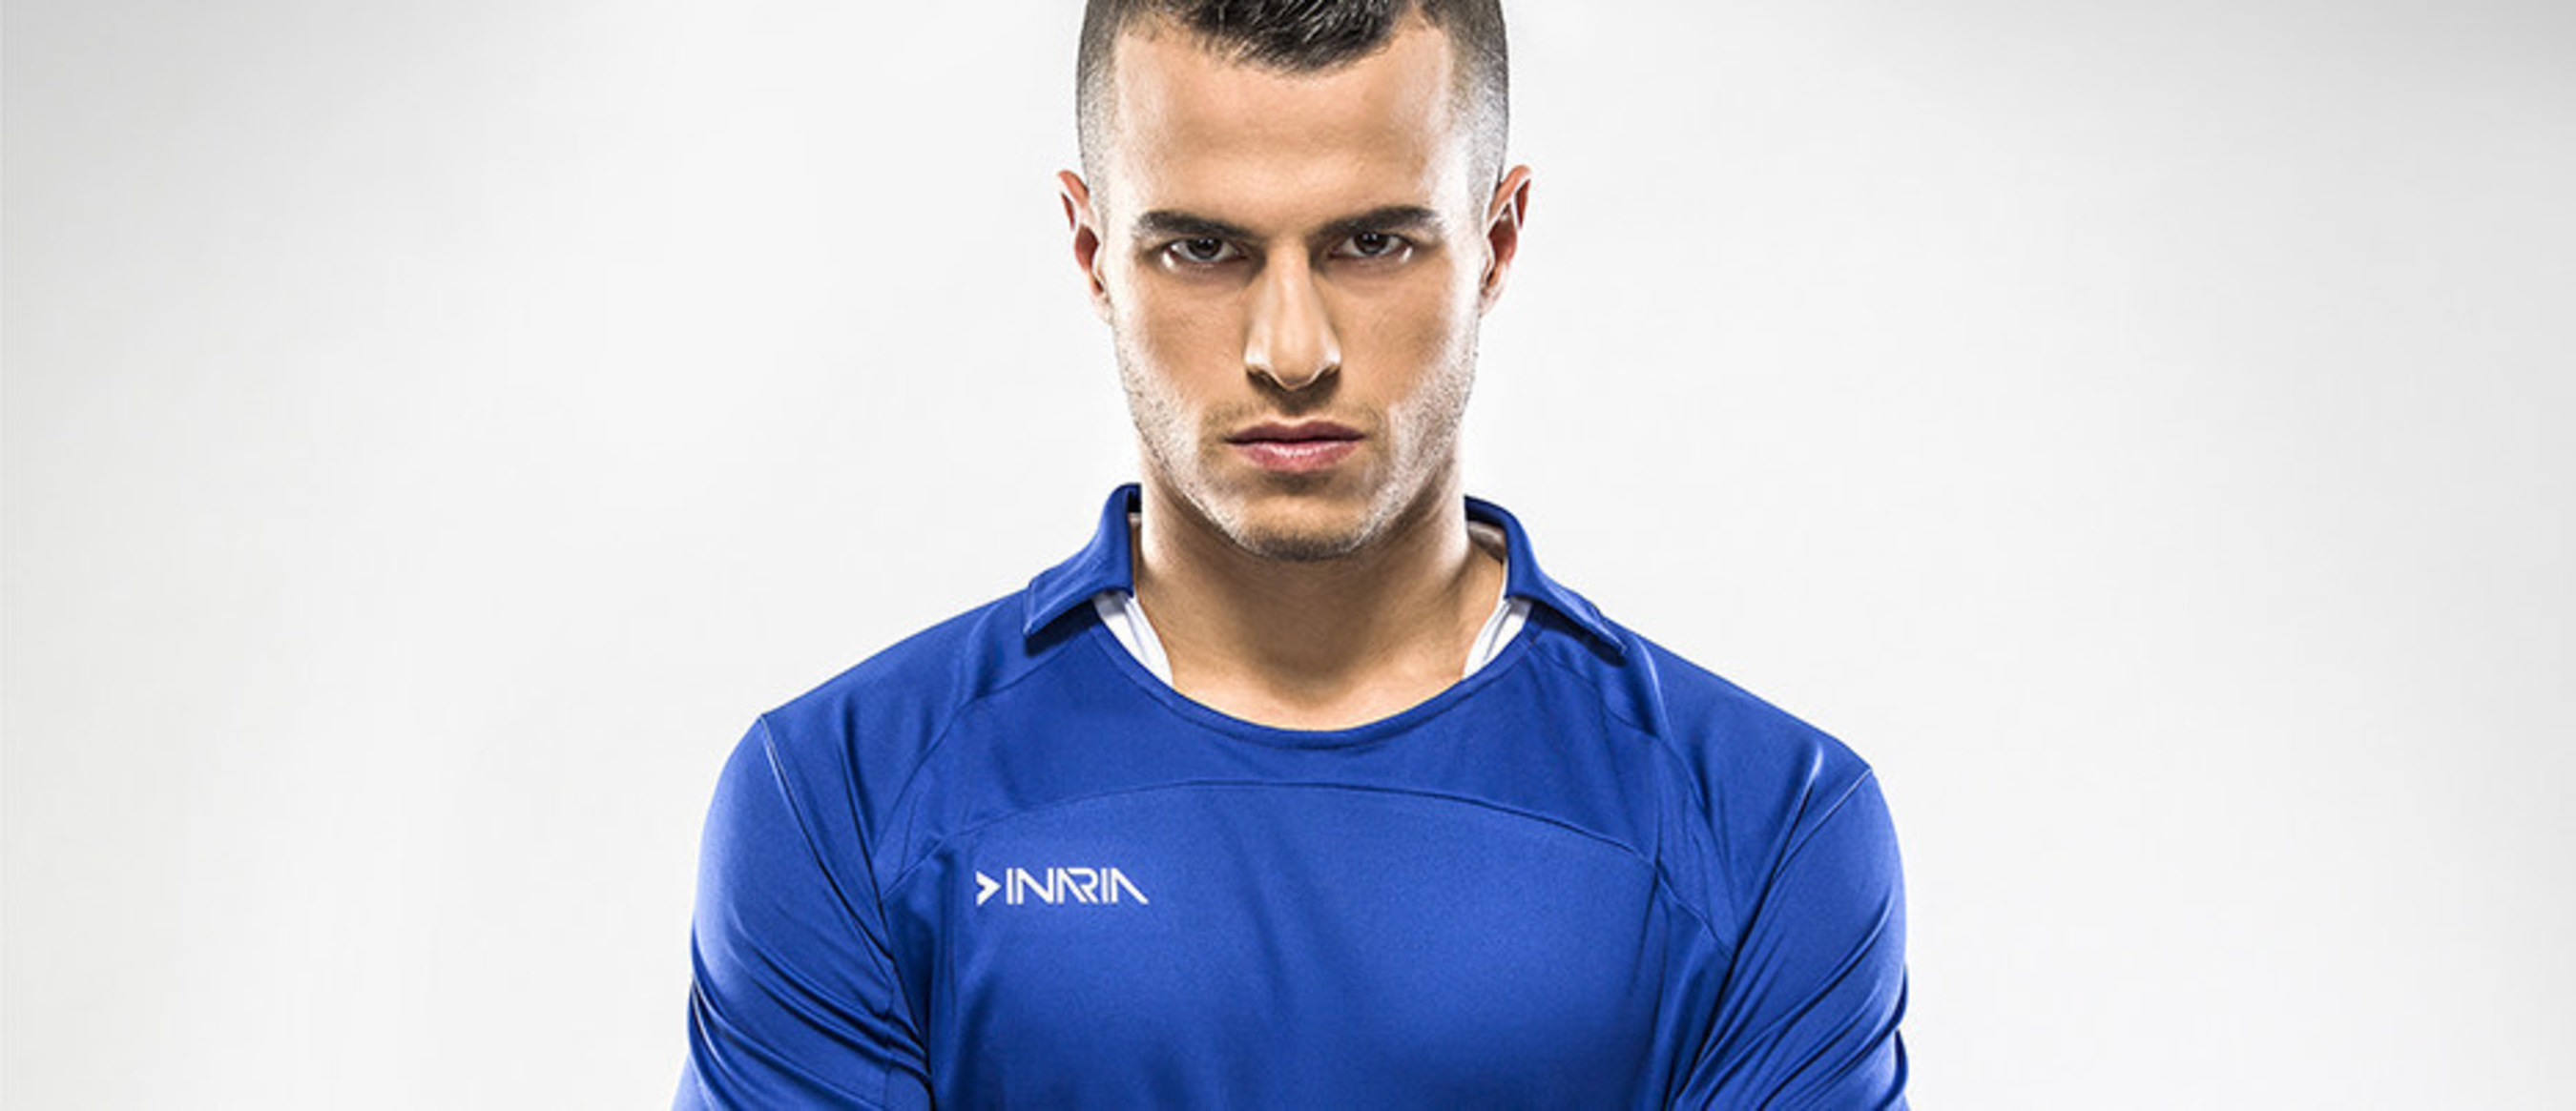 Sebastian Giovinco partners with INARIA for a line of premium training apparel and to develop a new full lifestyle collection.